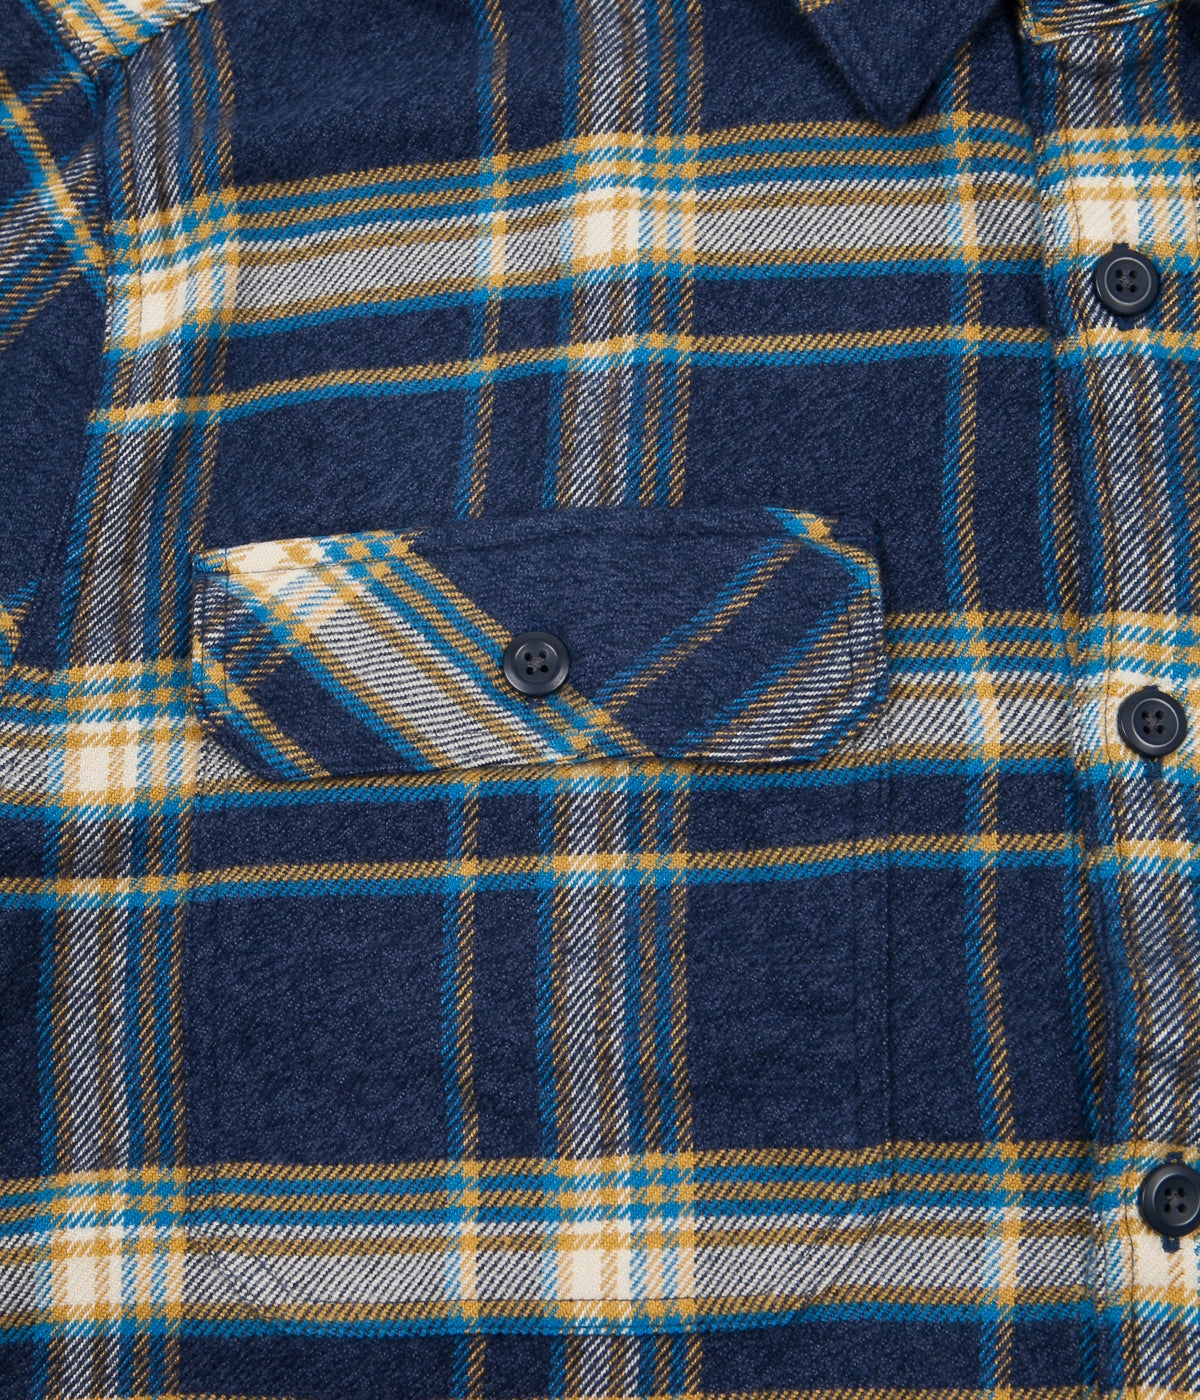 Patagonia Fjord Flannel Shirt - Activist / Navy Blue